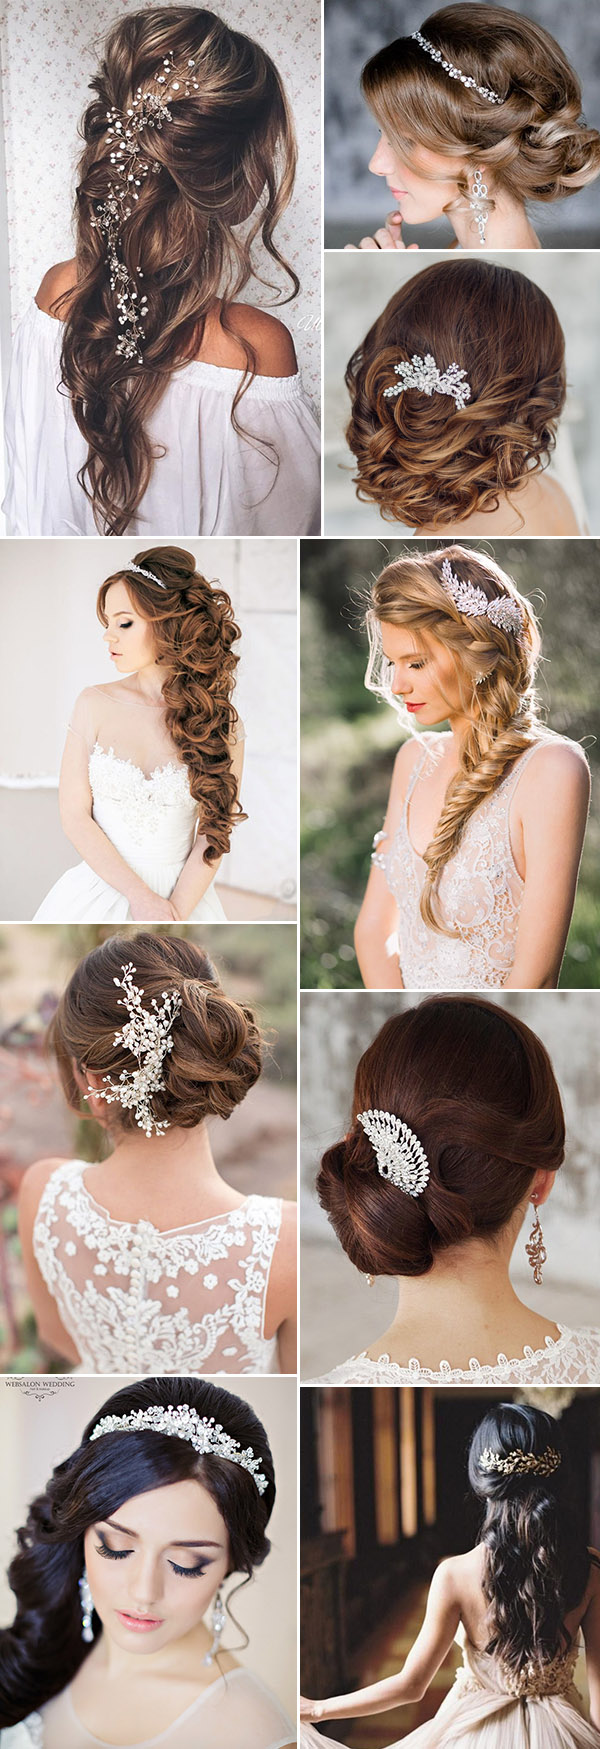 Floral Fancy Bridal Headpieces Hair Accessories 2020 Designs